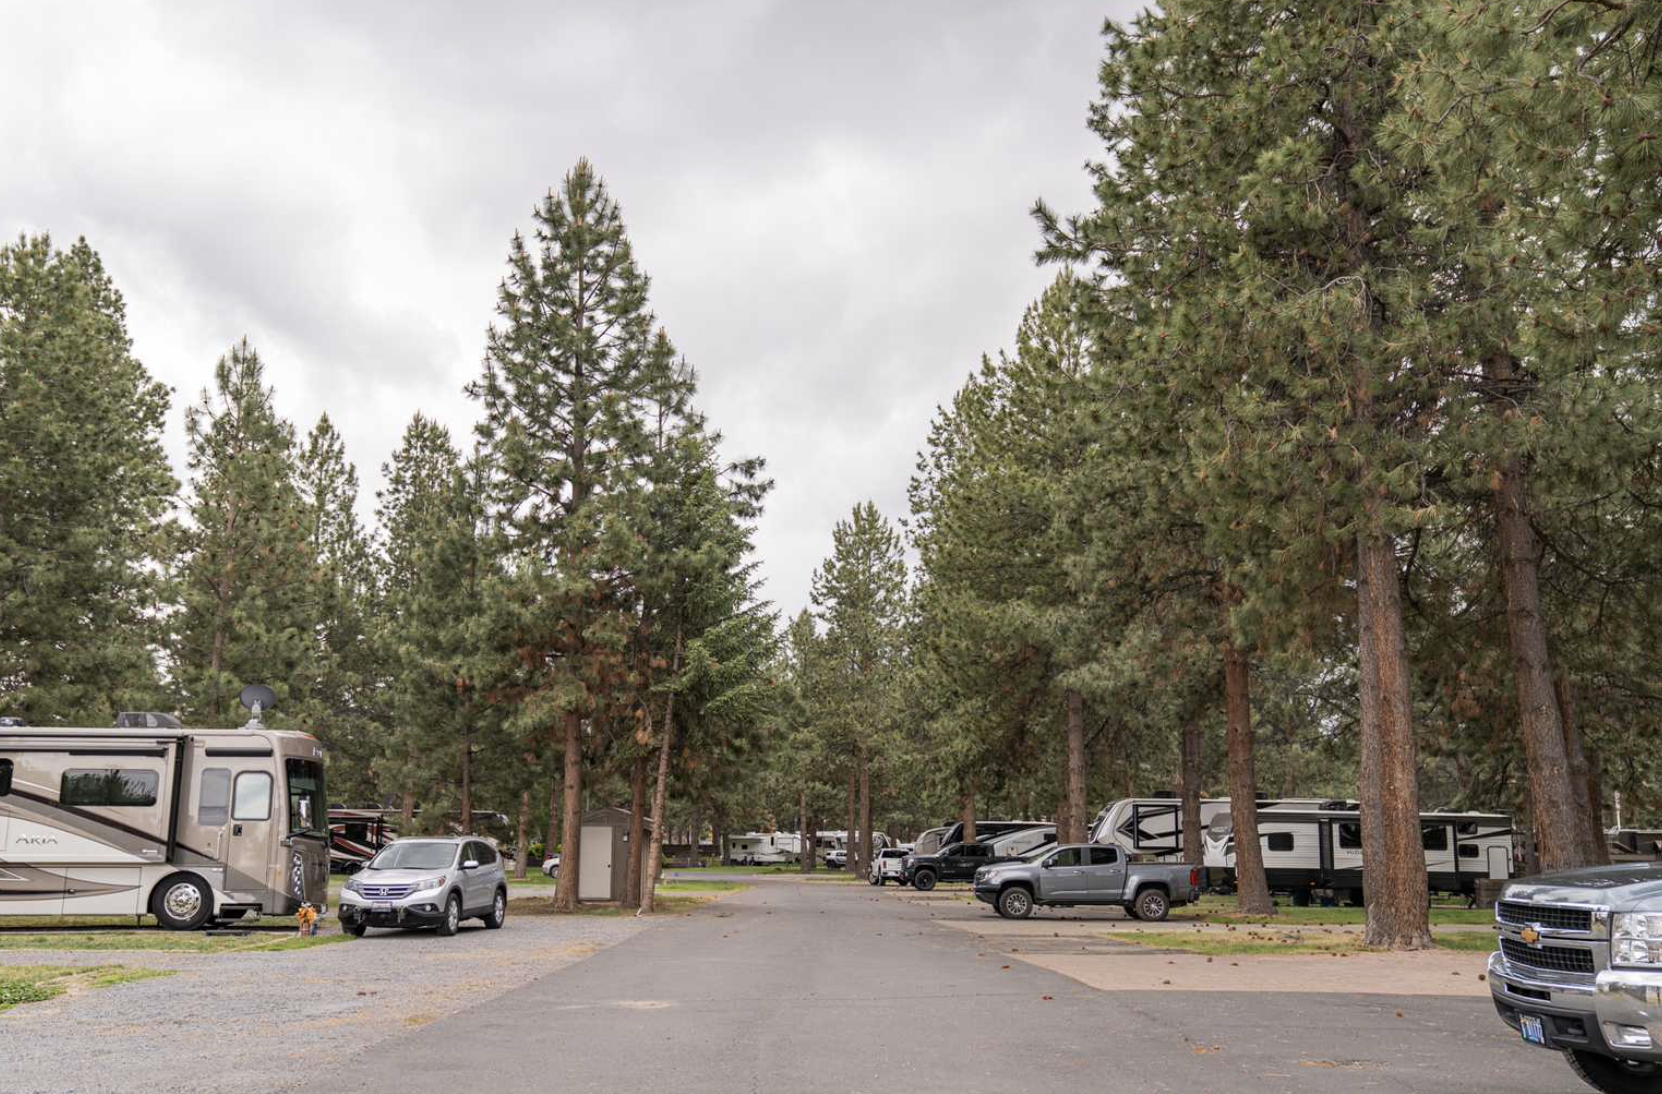 Tall trees at campground with RVs parked in-between